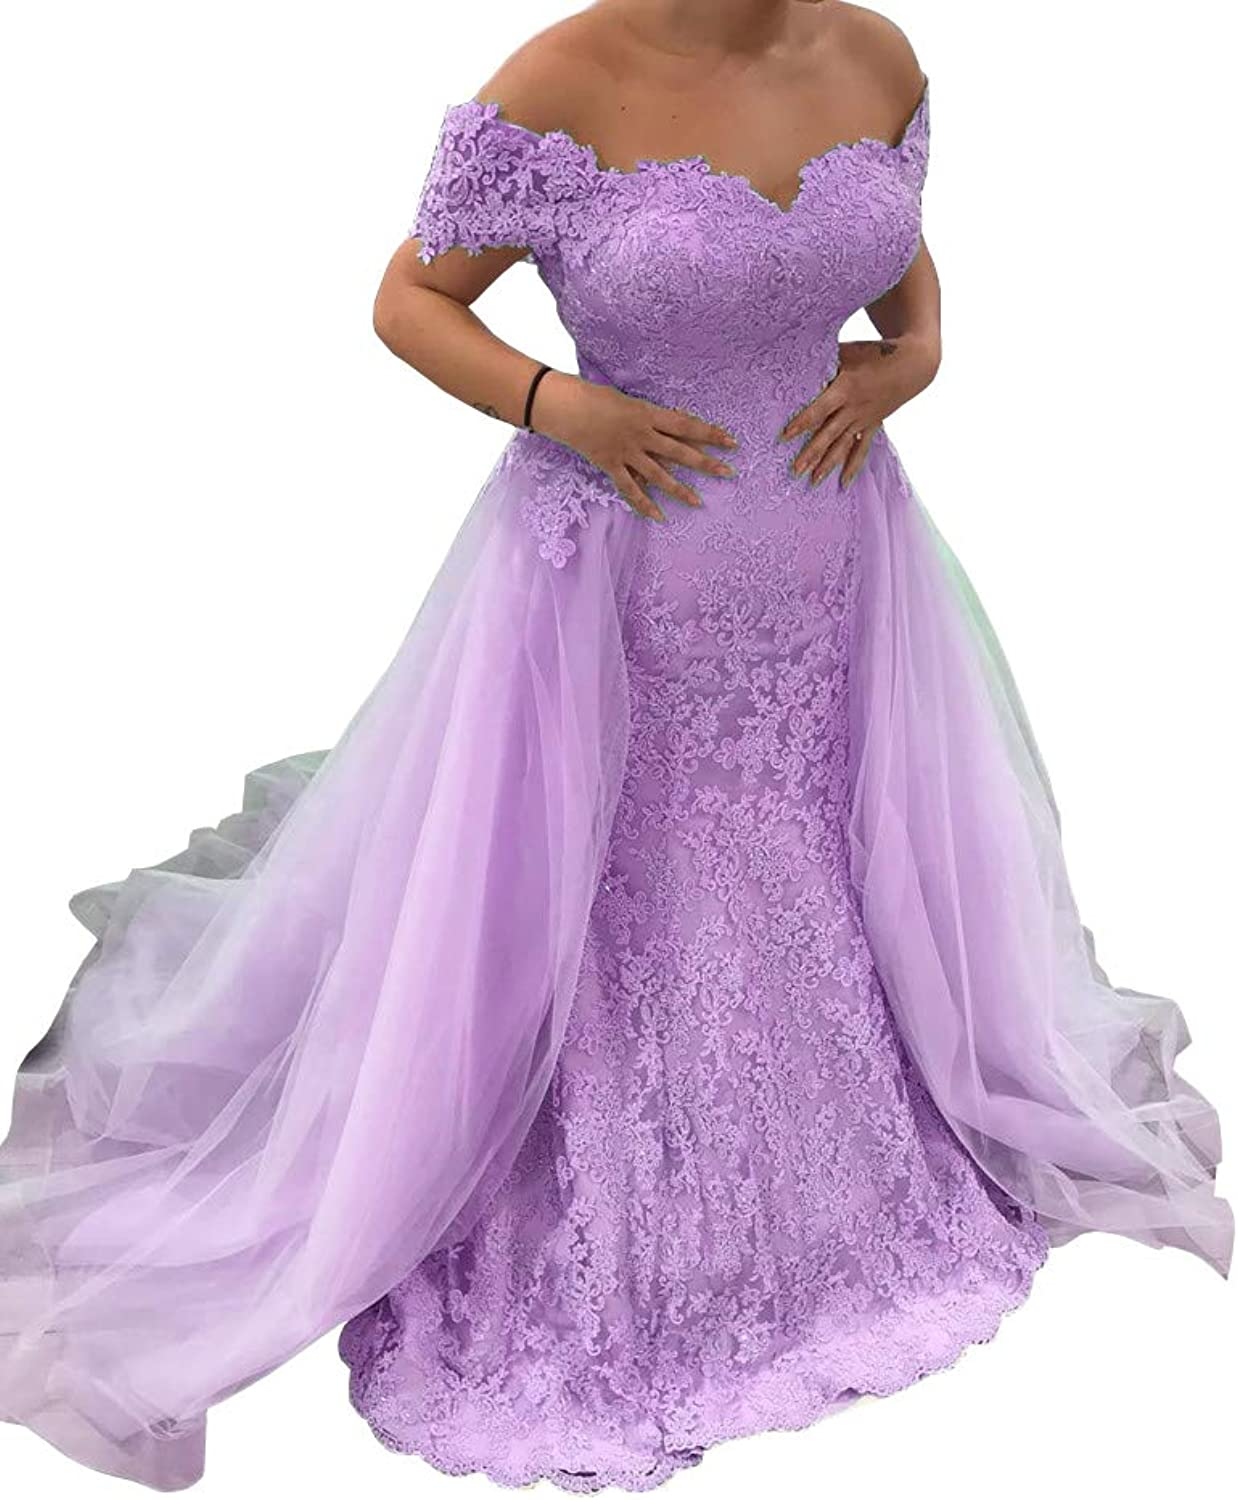 20KyleBird Women's Off The Shoulder Mermaid Lace Evening Dresses with Detachable Train Long Formal Prom Gowns Plus Size